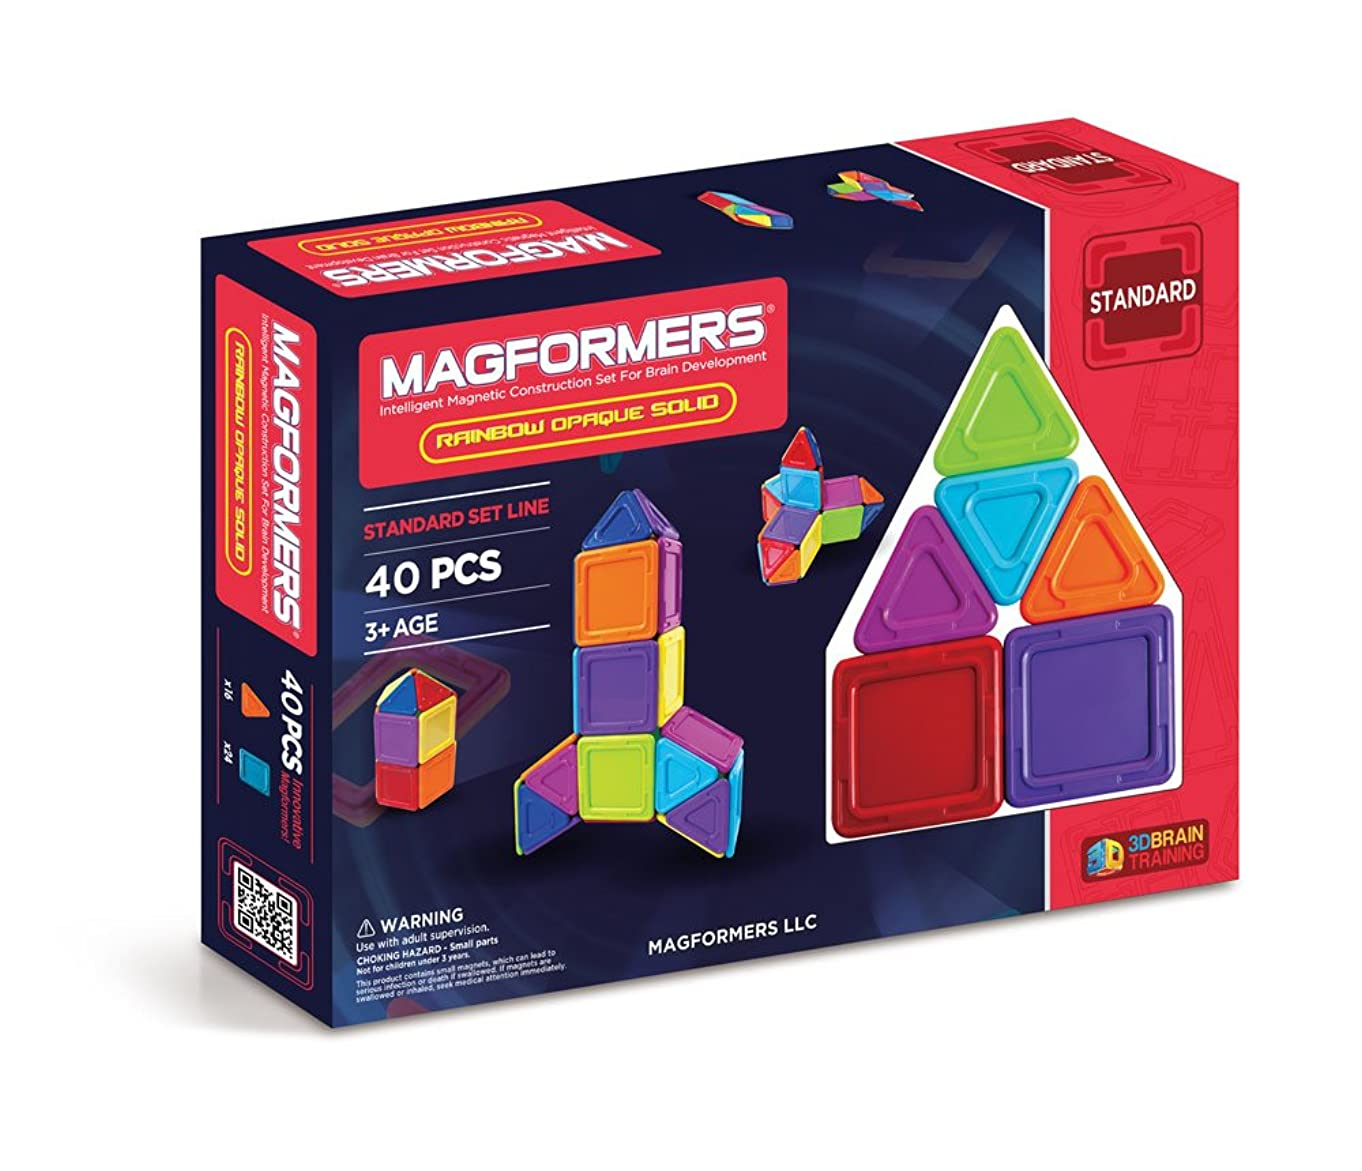 Magformers Rainbow Opaque Solid (40-Pieces) Set Magnetic    Building      Blocks, Educational  Magnetic    Tiles Kit , Magnetic    Construction  STEM Toy Set